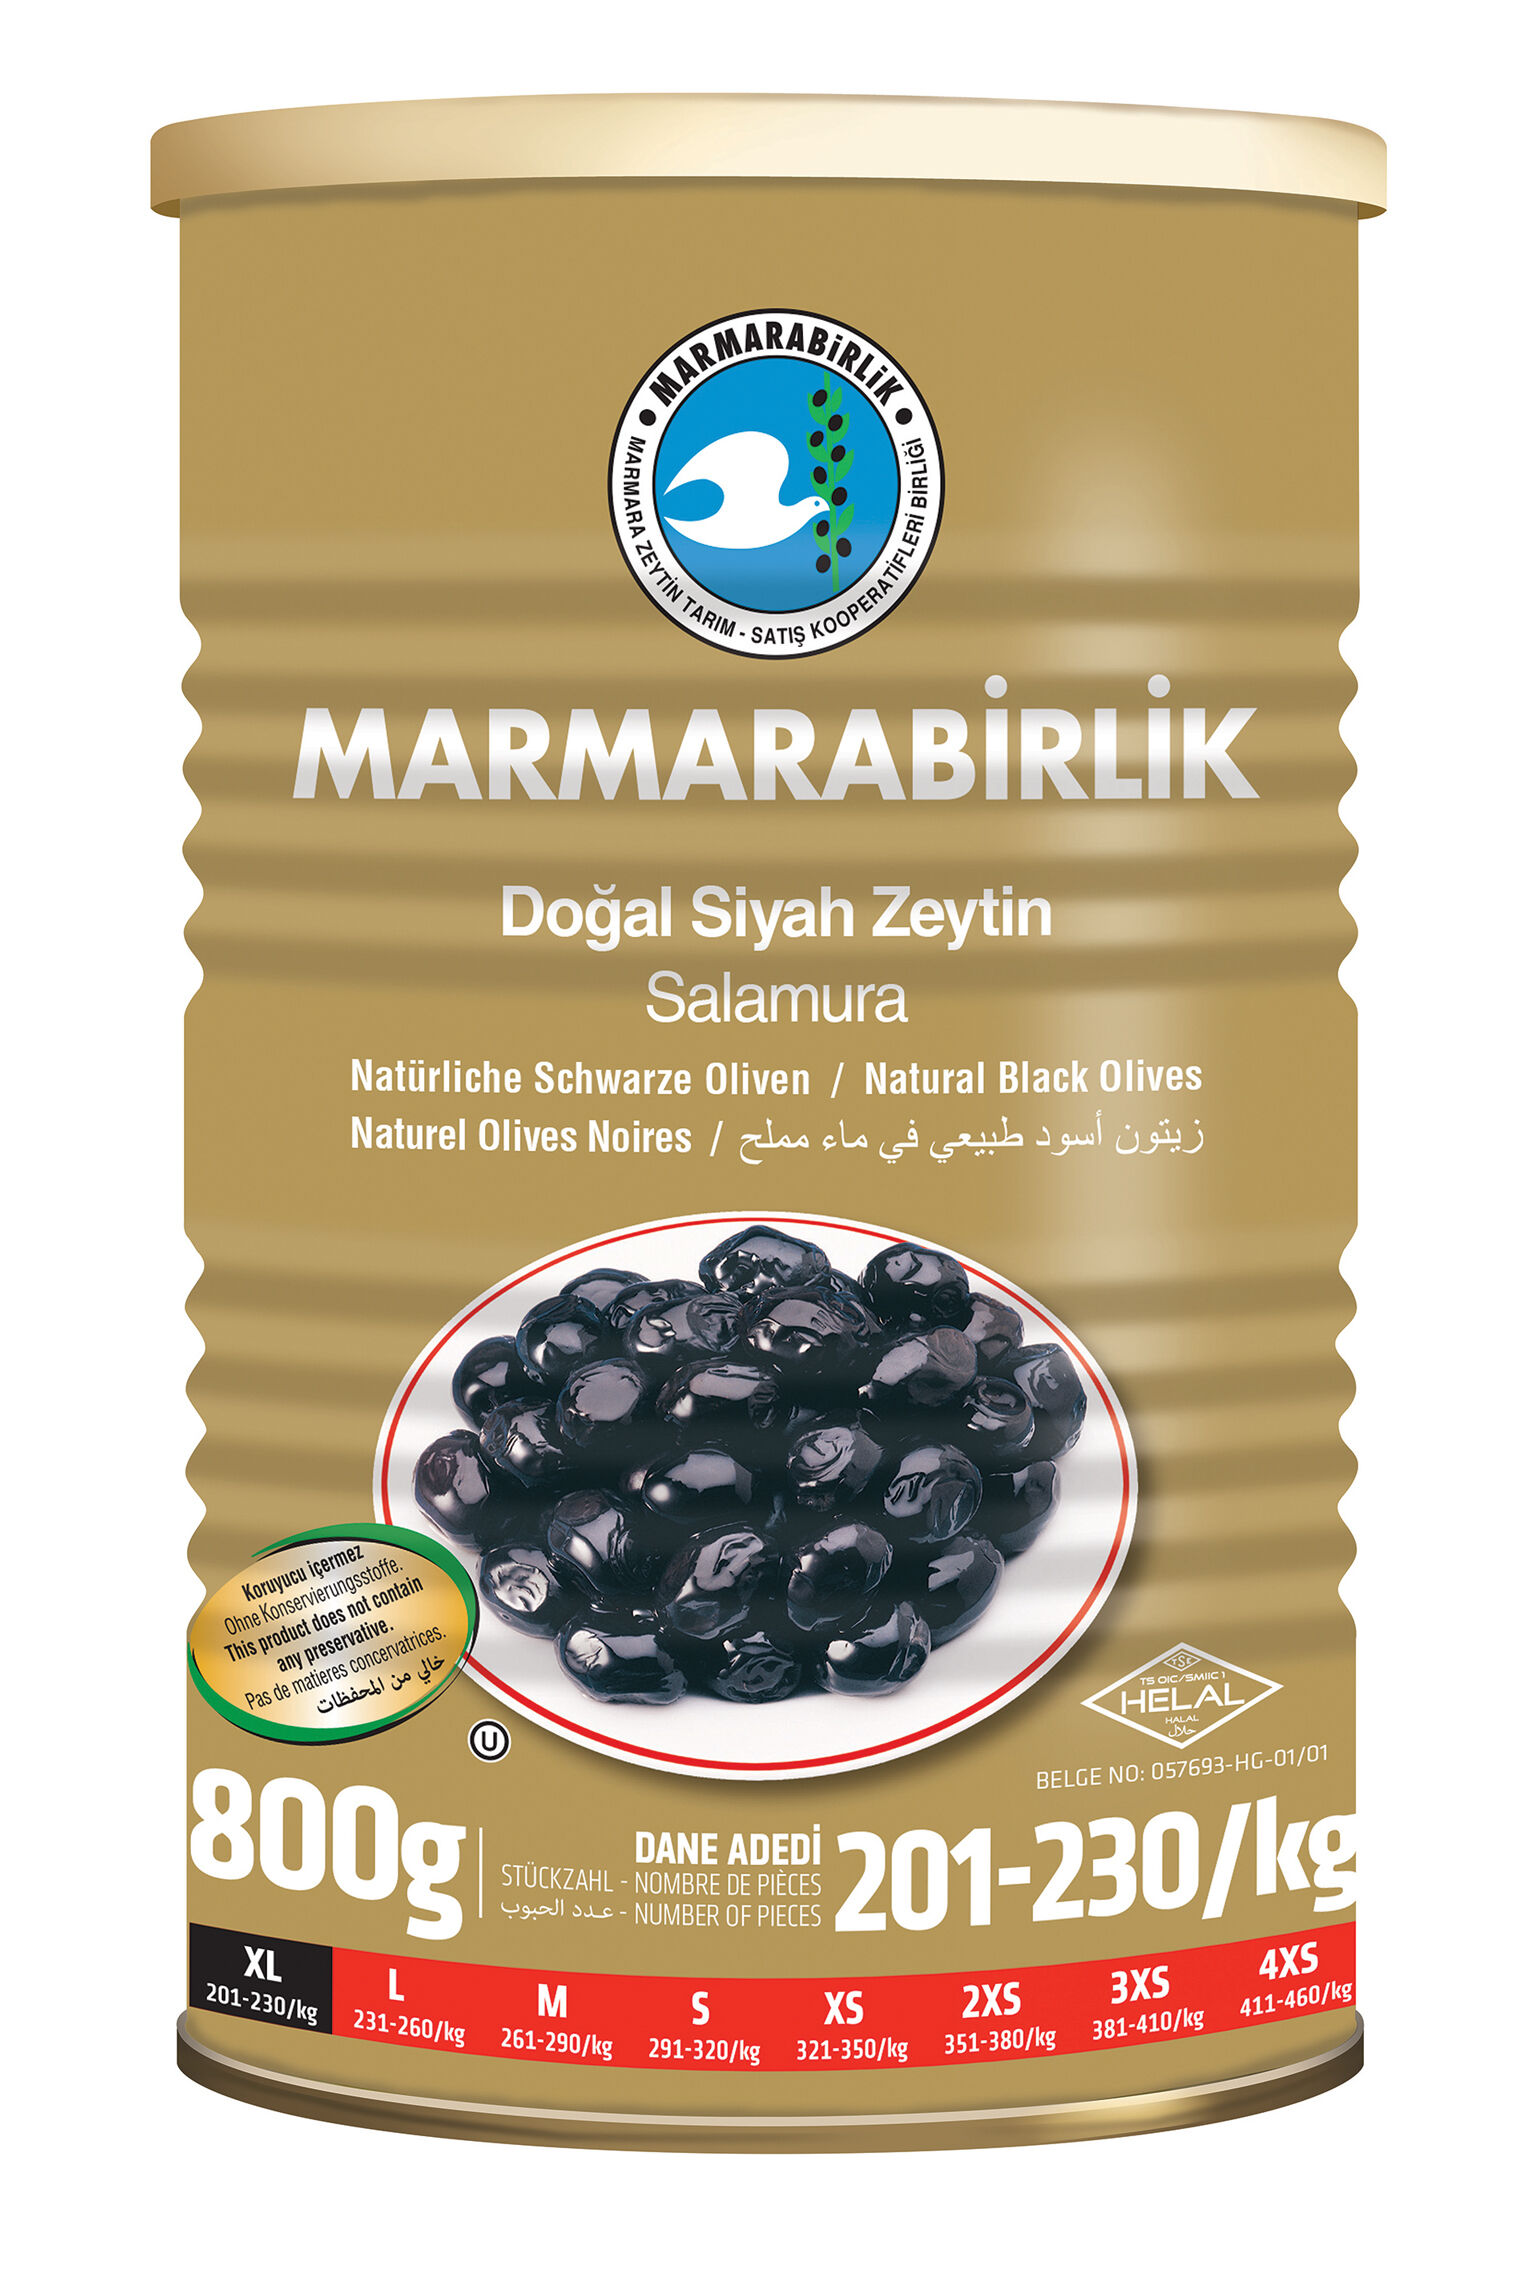 Image for Marmarabirlik Zeytin Mega 800G Tnk (201-230Klb) from Bursa